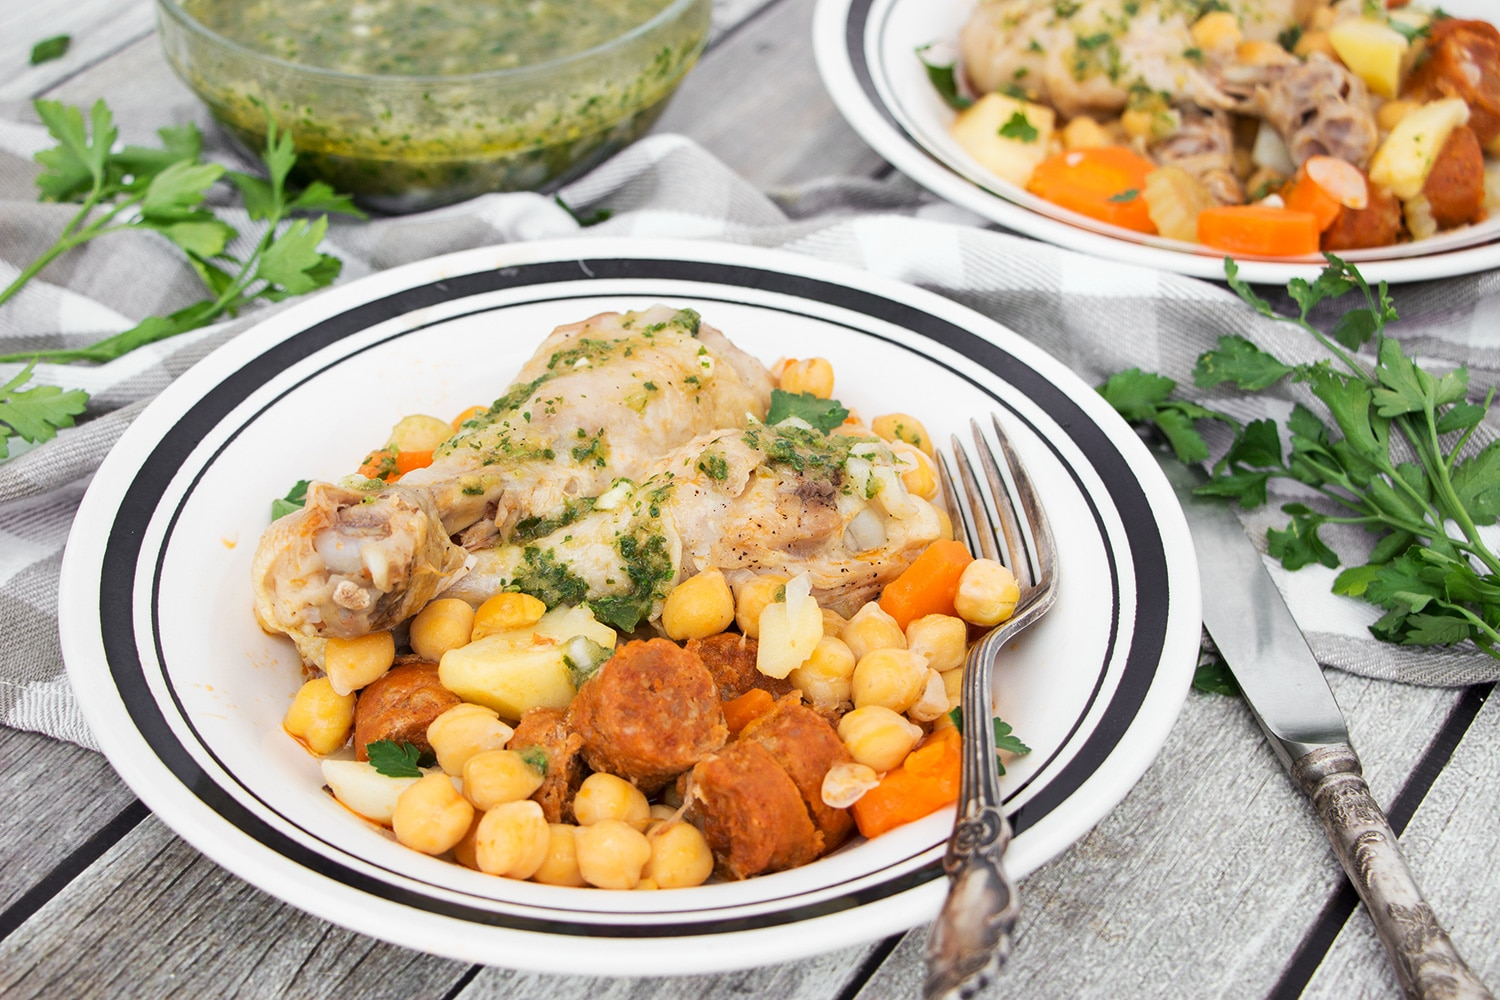 Cocido is one of the most iconic Spanish dishes. While this stew can be made numerous ways, my version features chicken, chorizo, chickpeas, and a bunch of veggies! | cookingtheglobe.com